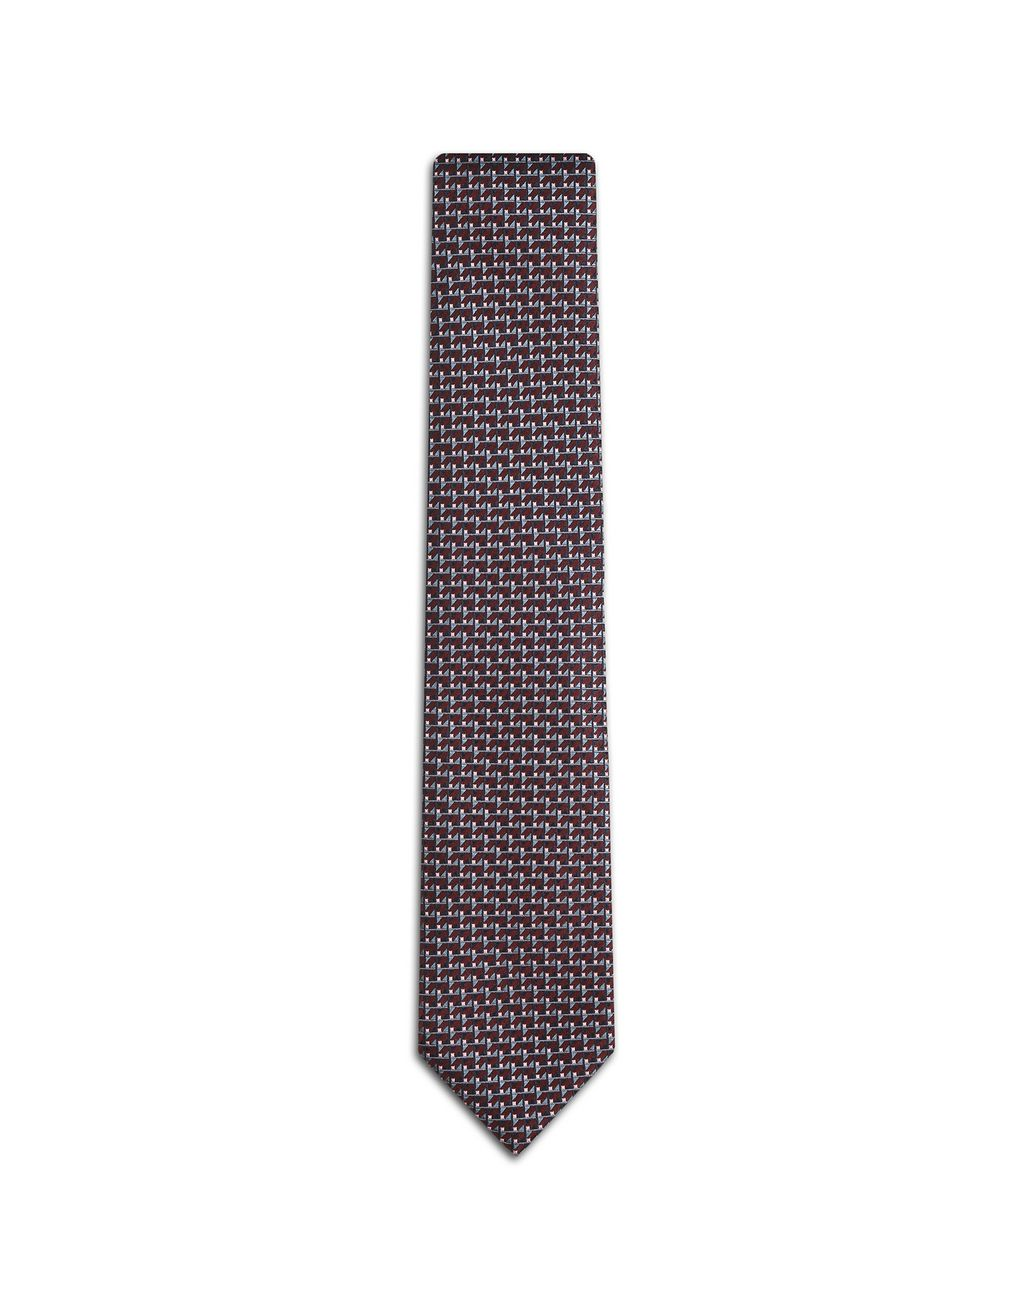 BRIONI Bordeaux and Navy Blue Micro Design Tie Krawatte Herren f